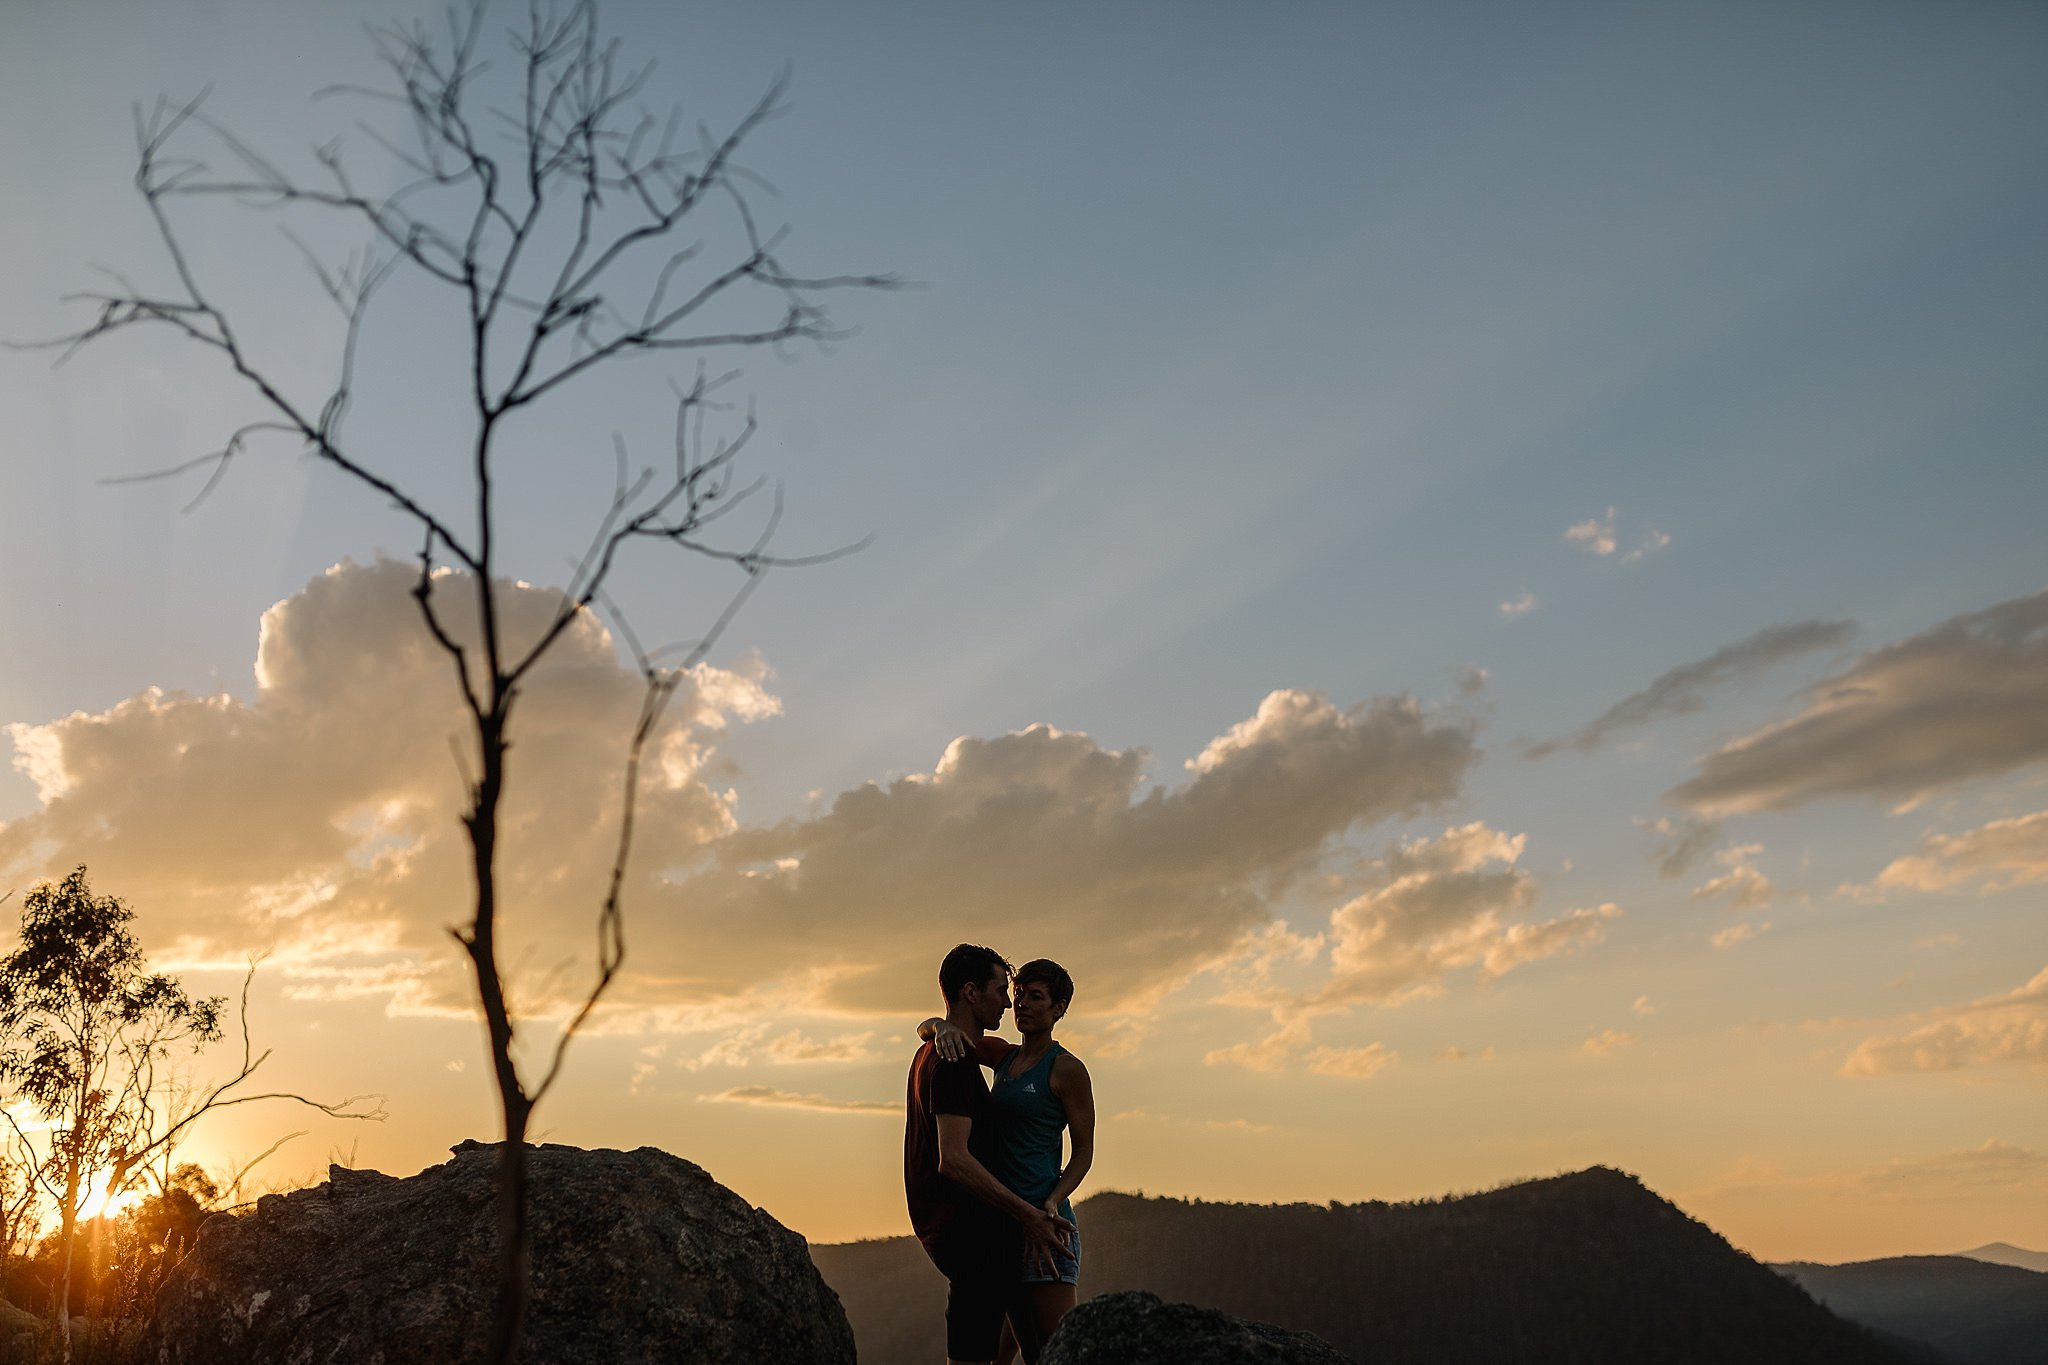 anniversary session,Canberra Photography,Keepsakephoto by the Keeffes,ACT wedding photographer,canberra wedding,Canberra Wedding Photographer,Canberra Wedding Photography,Engagement Photography,Engagement,